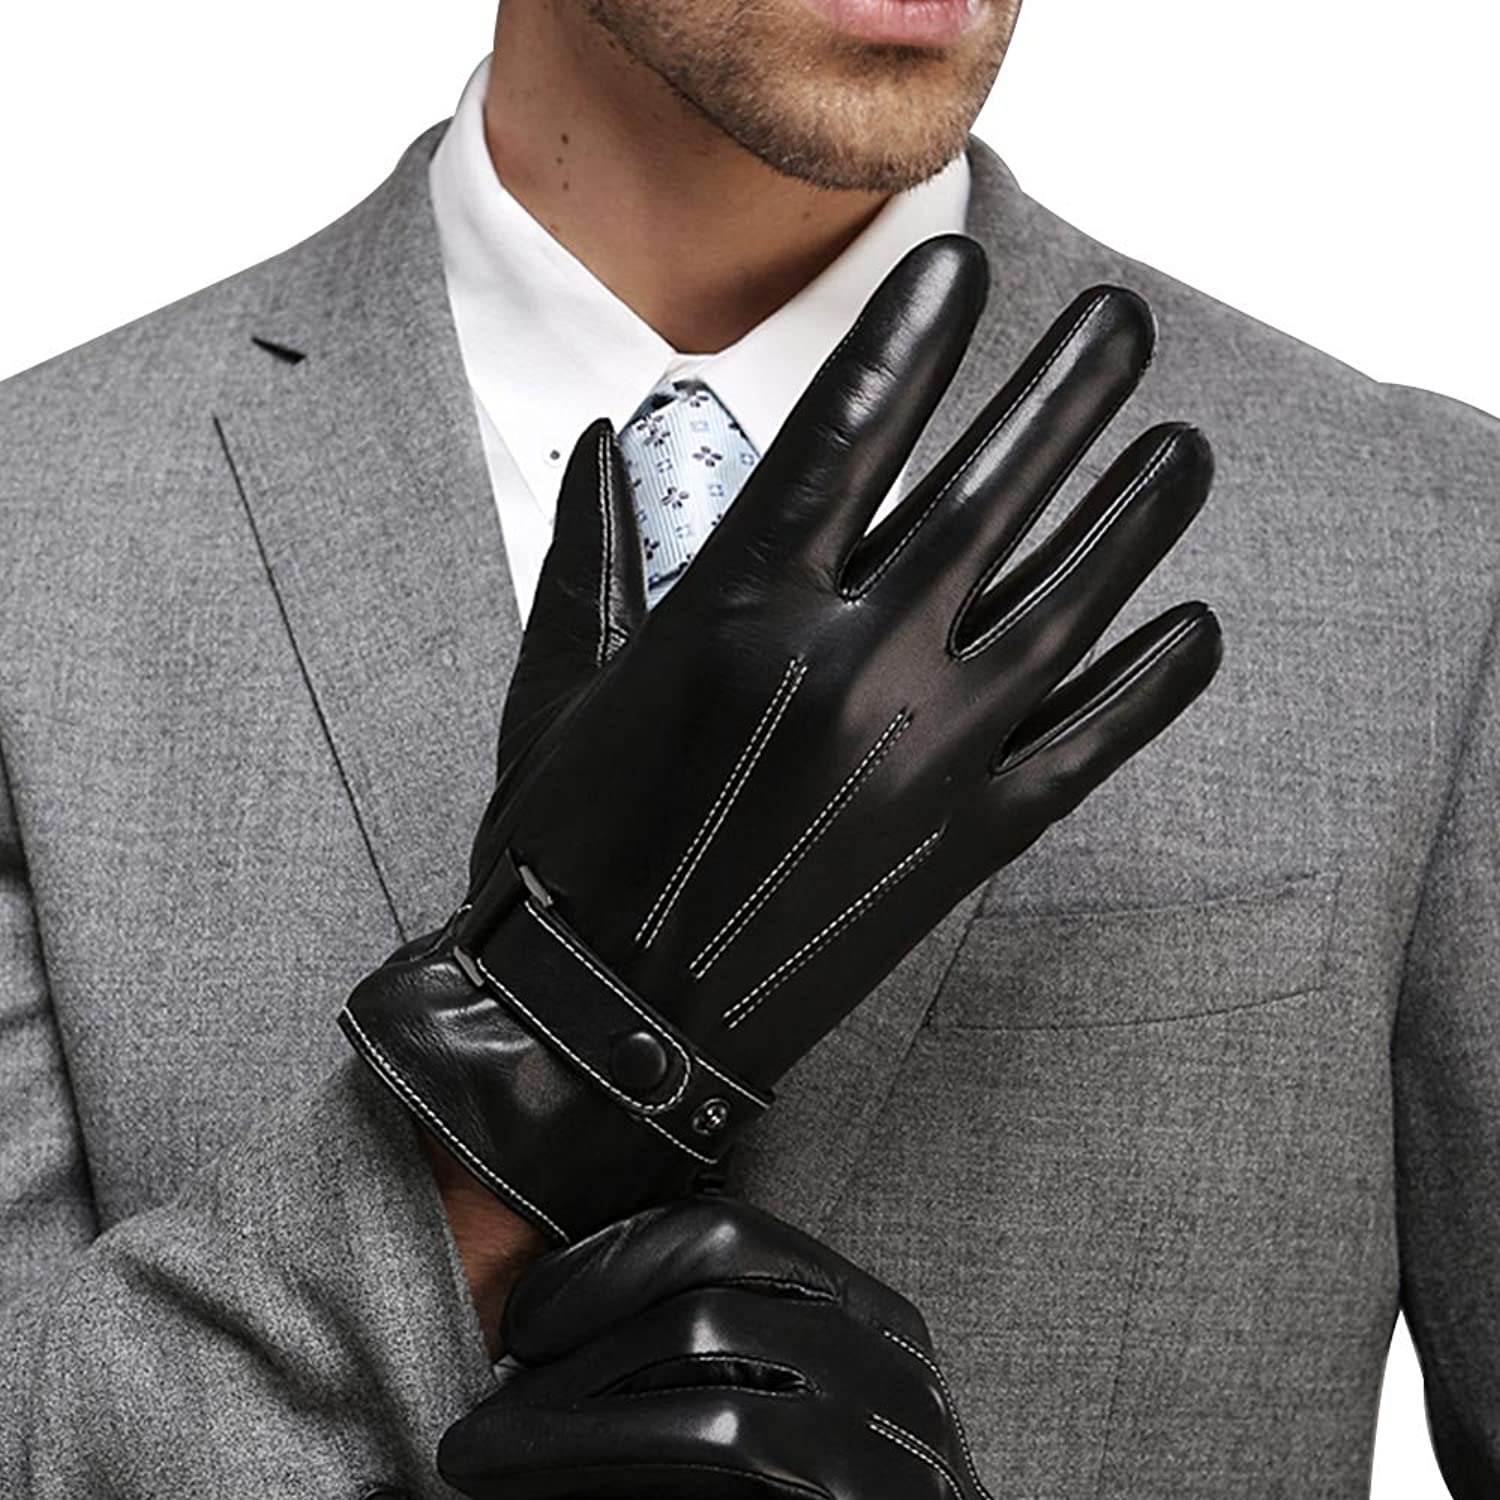 Mens leather gloves for iphone - Harrms Best Luxury Touchscreen Italian Nappa Leather Gloves For Men S Texting Driving Cashmere Lining